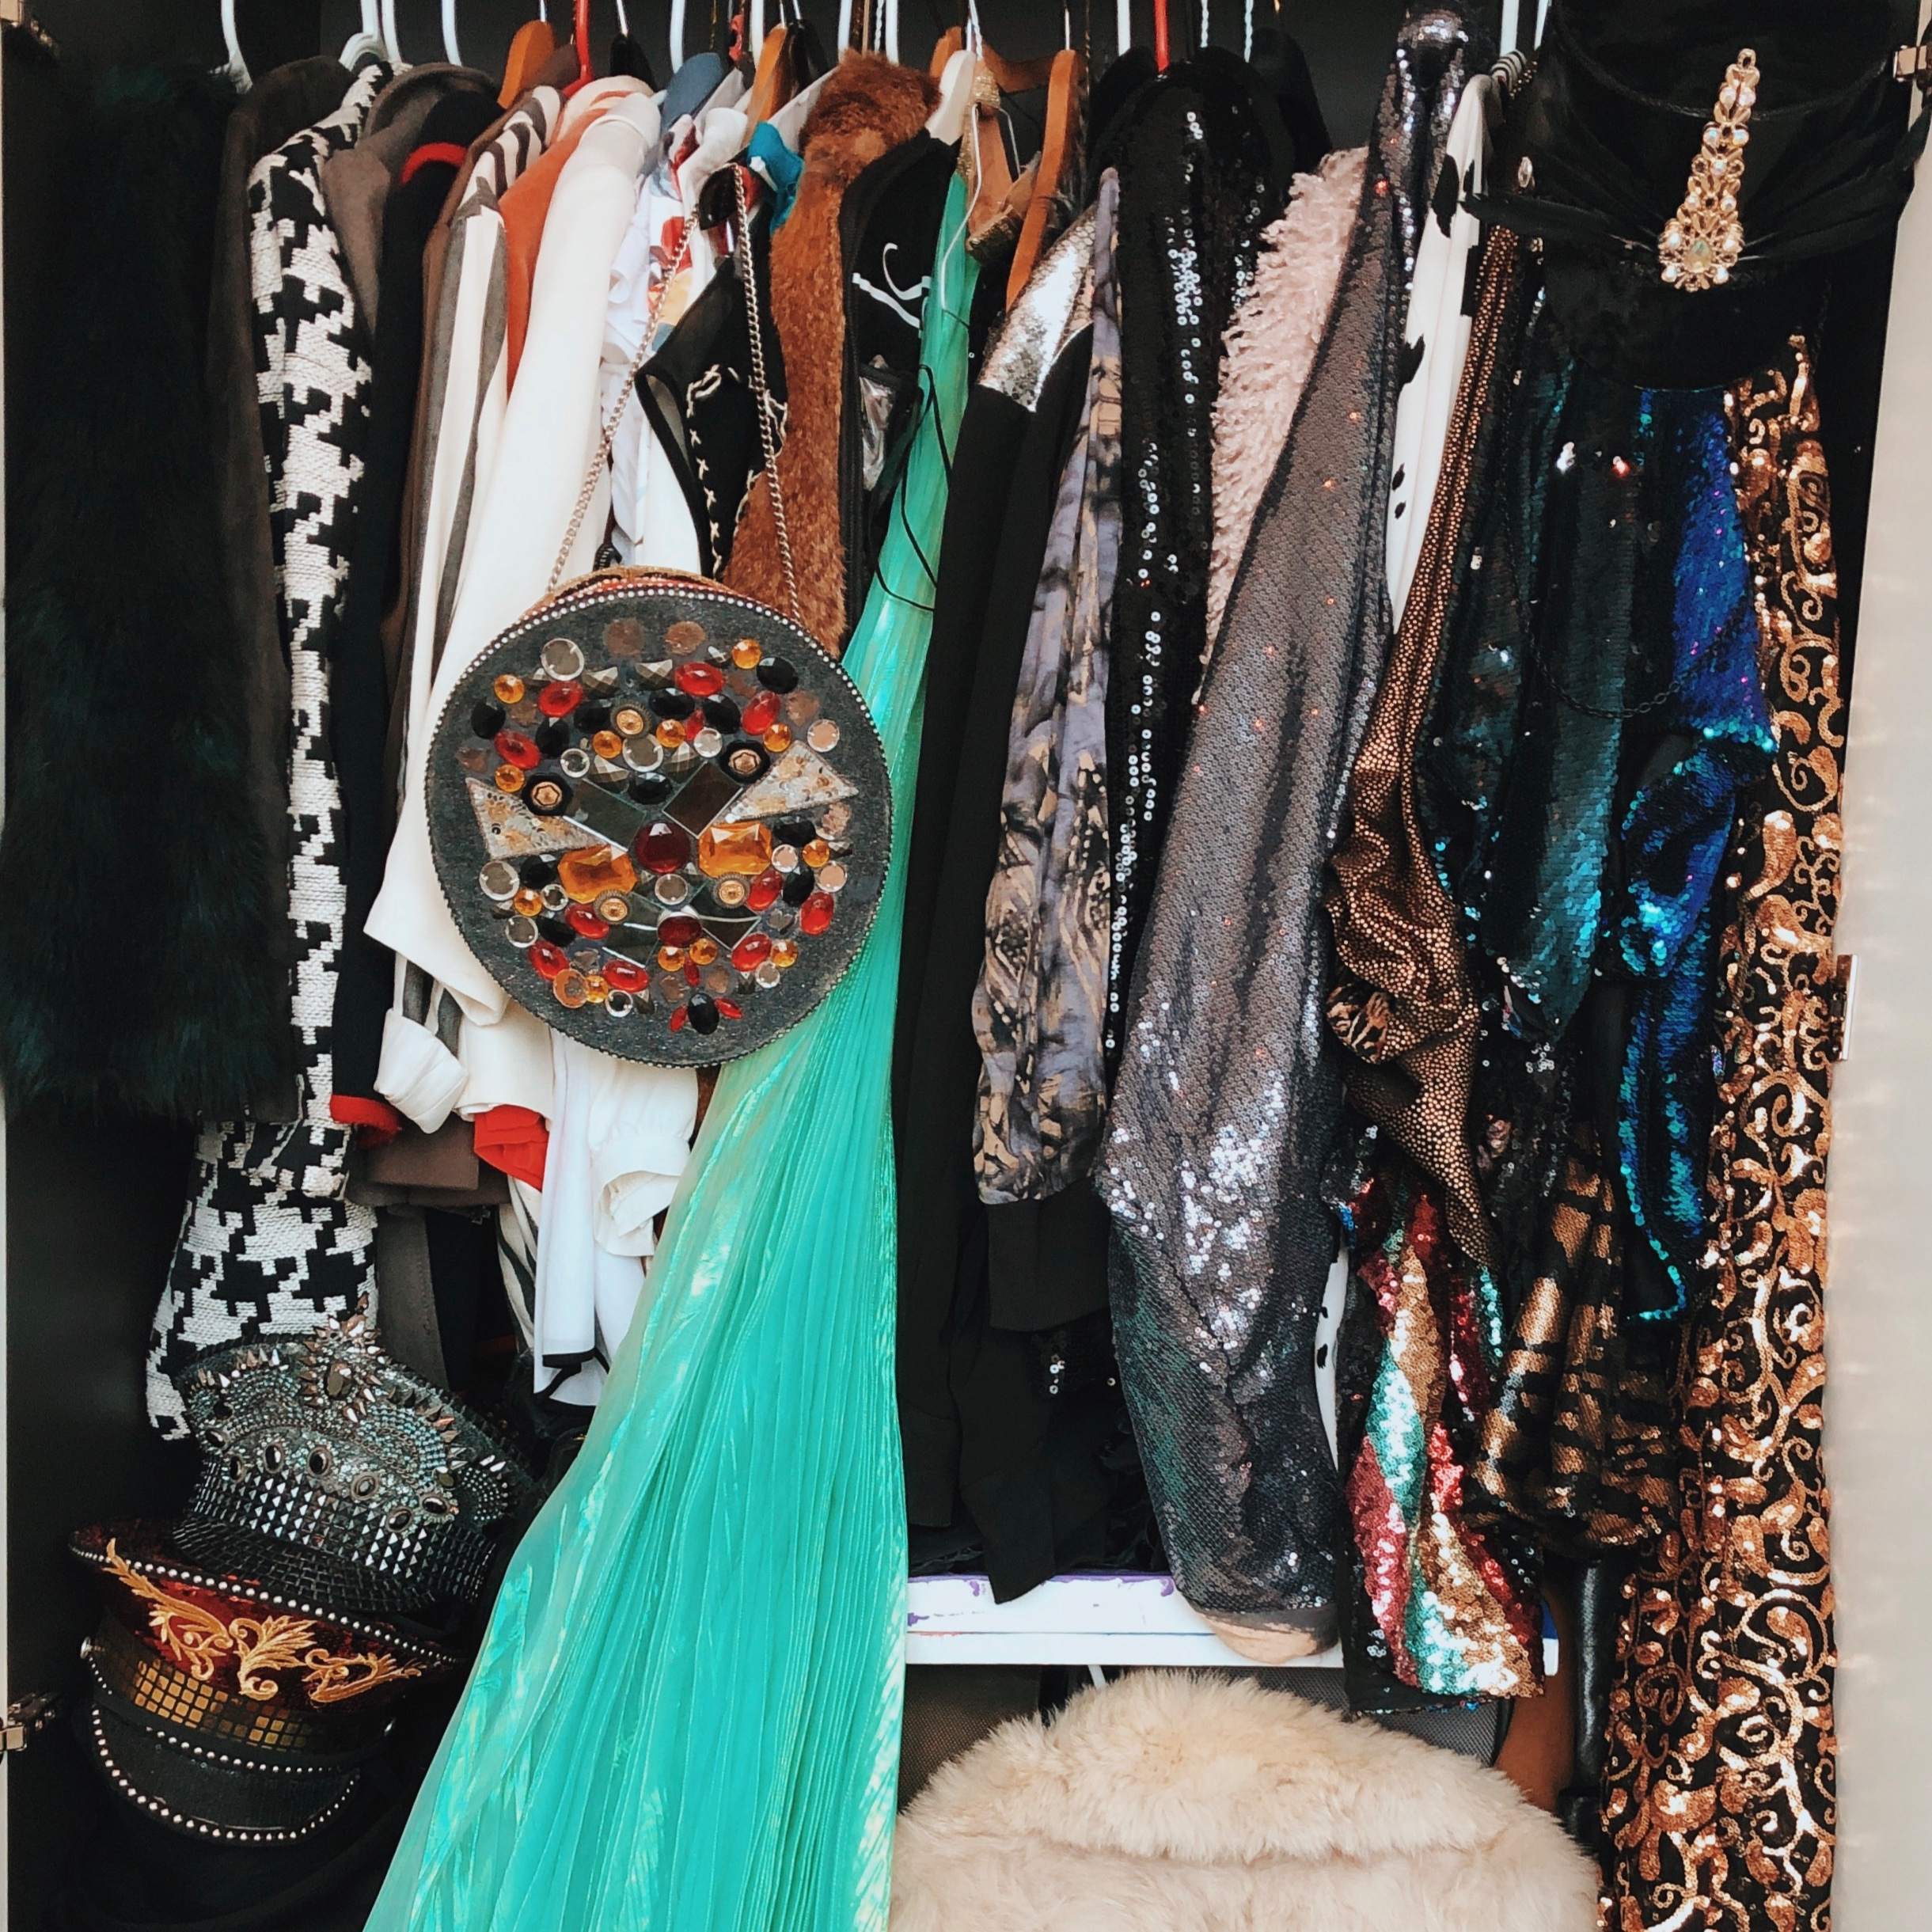 We can also help you empty your jam-packed closets! - We hate the idea of waste, and would love to find the perfect owners for the pieces you're not into anymore.